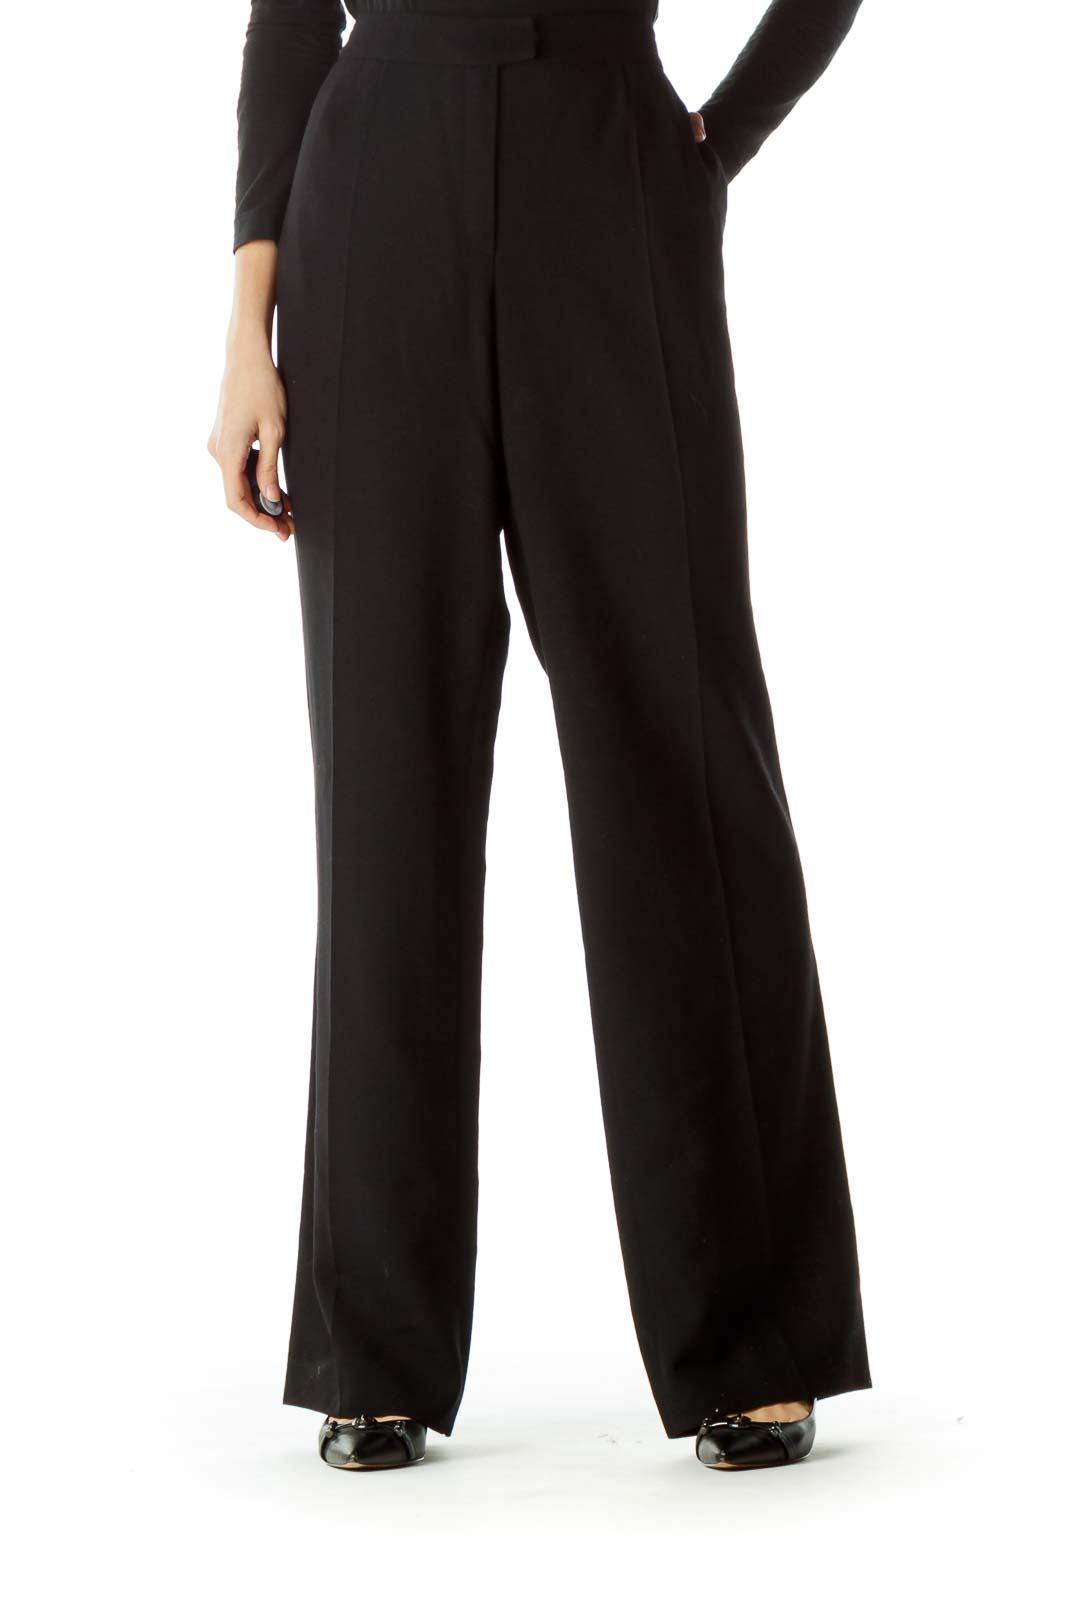 Black 100% Virgin Wool Dress Pants